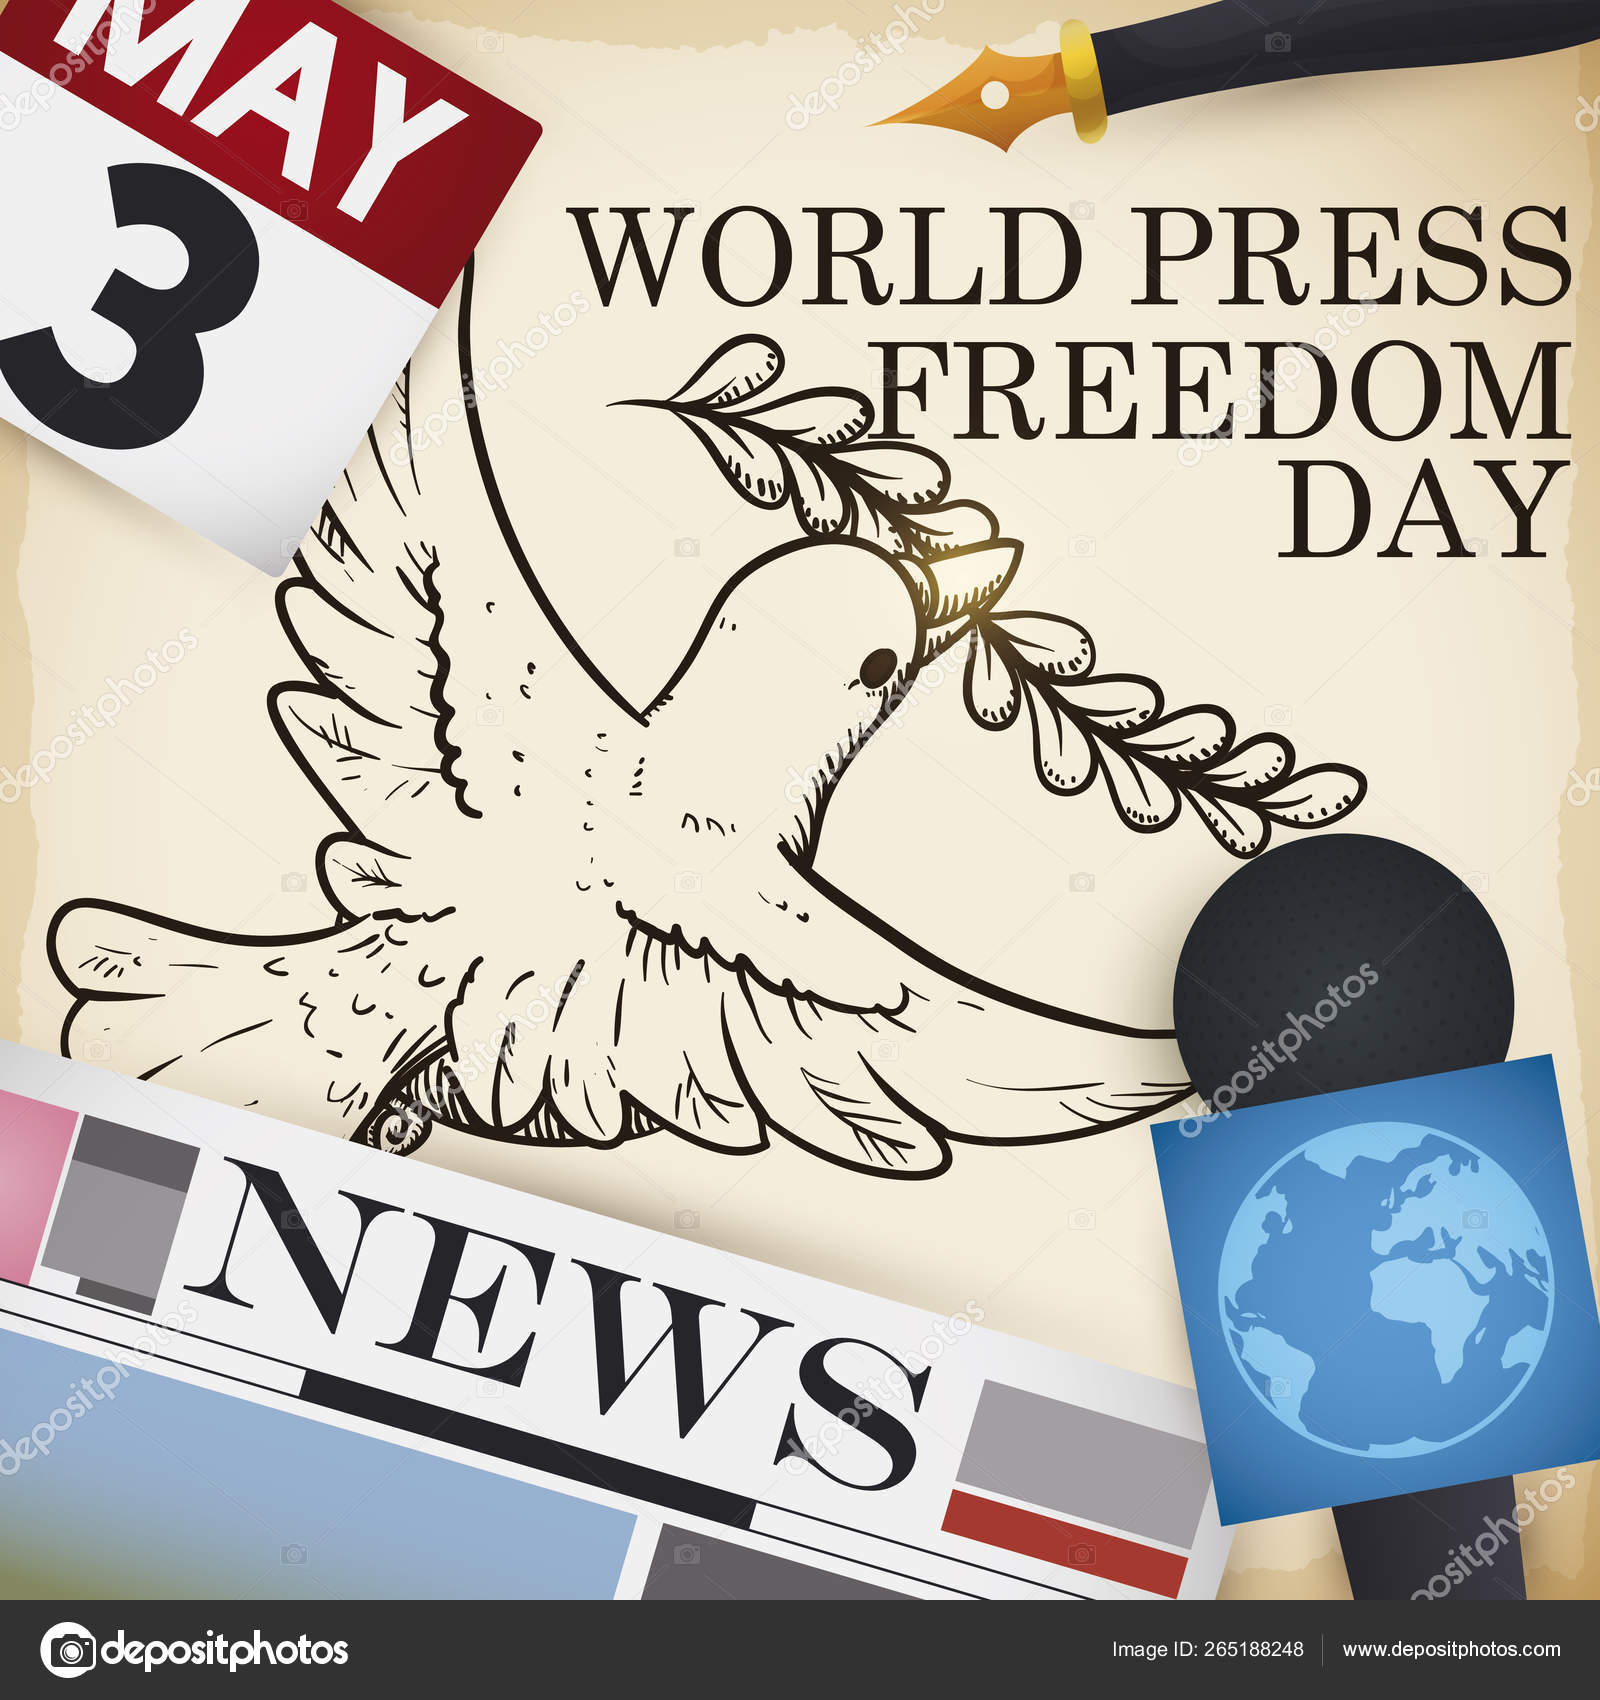 Dove Drawing and Media Elements for World Press Freedom Day